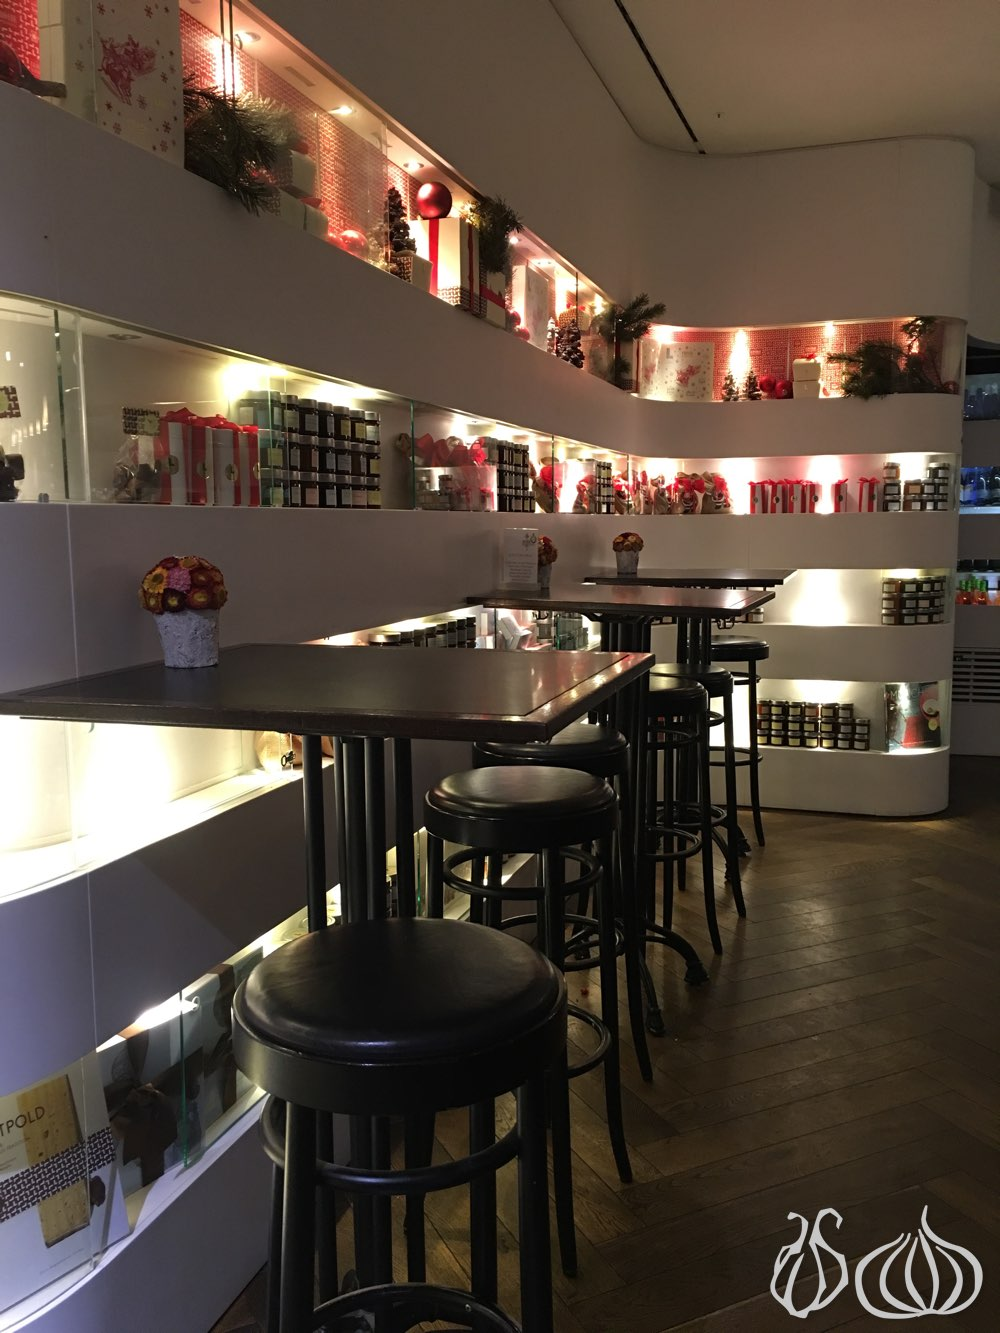 cafe-luitpold-munich162015-12-26-10-57-51